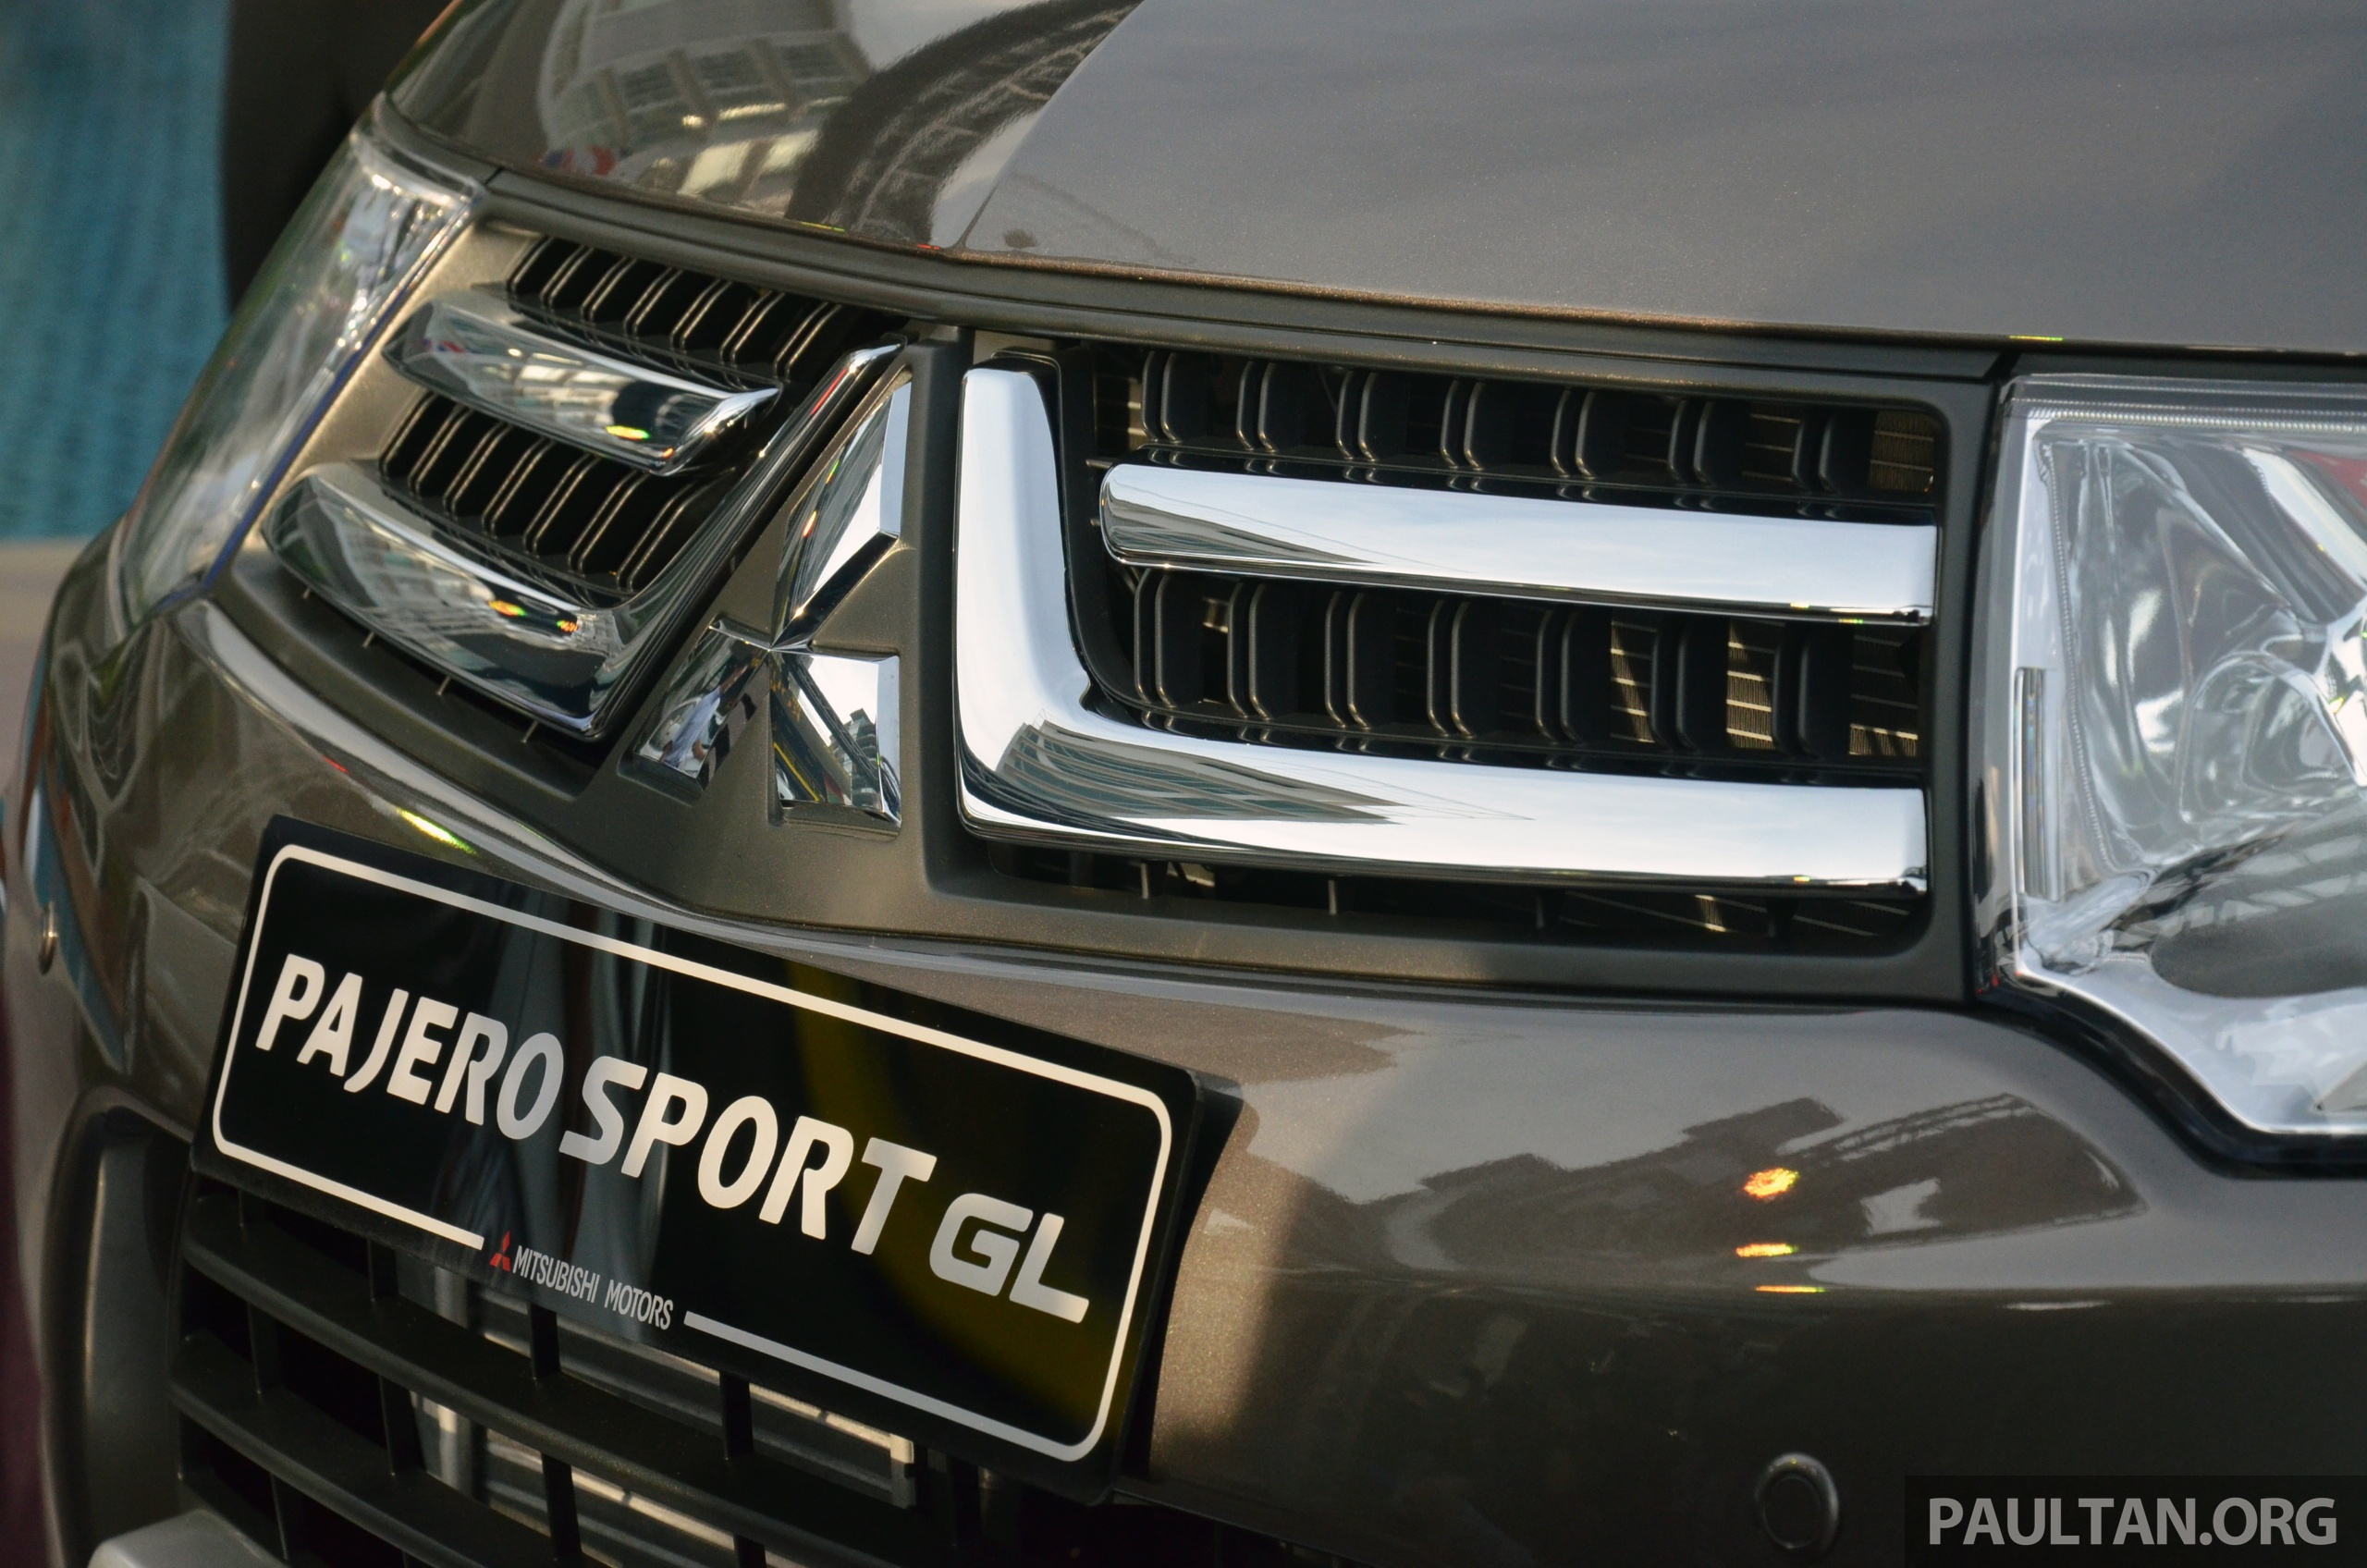 Mitsubishi Pajero Sport GL and Pajero Sport VGT enhanced for 2013